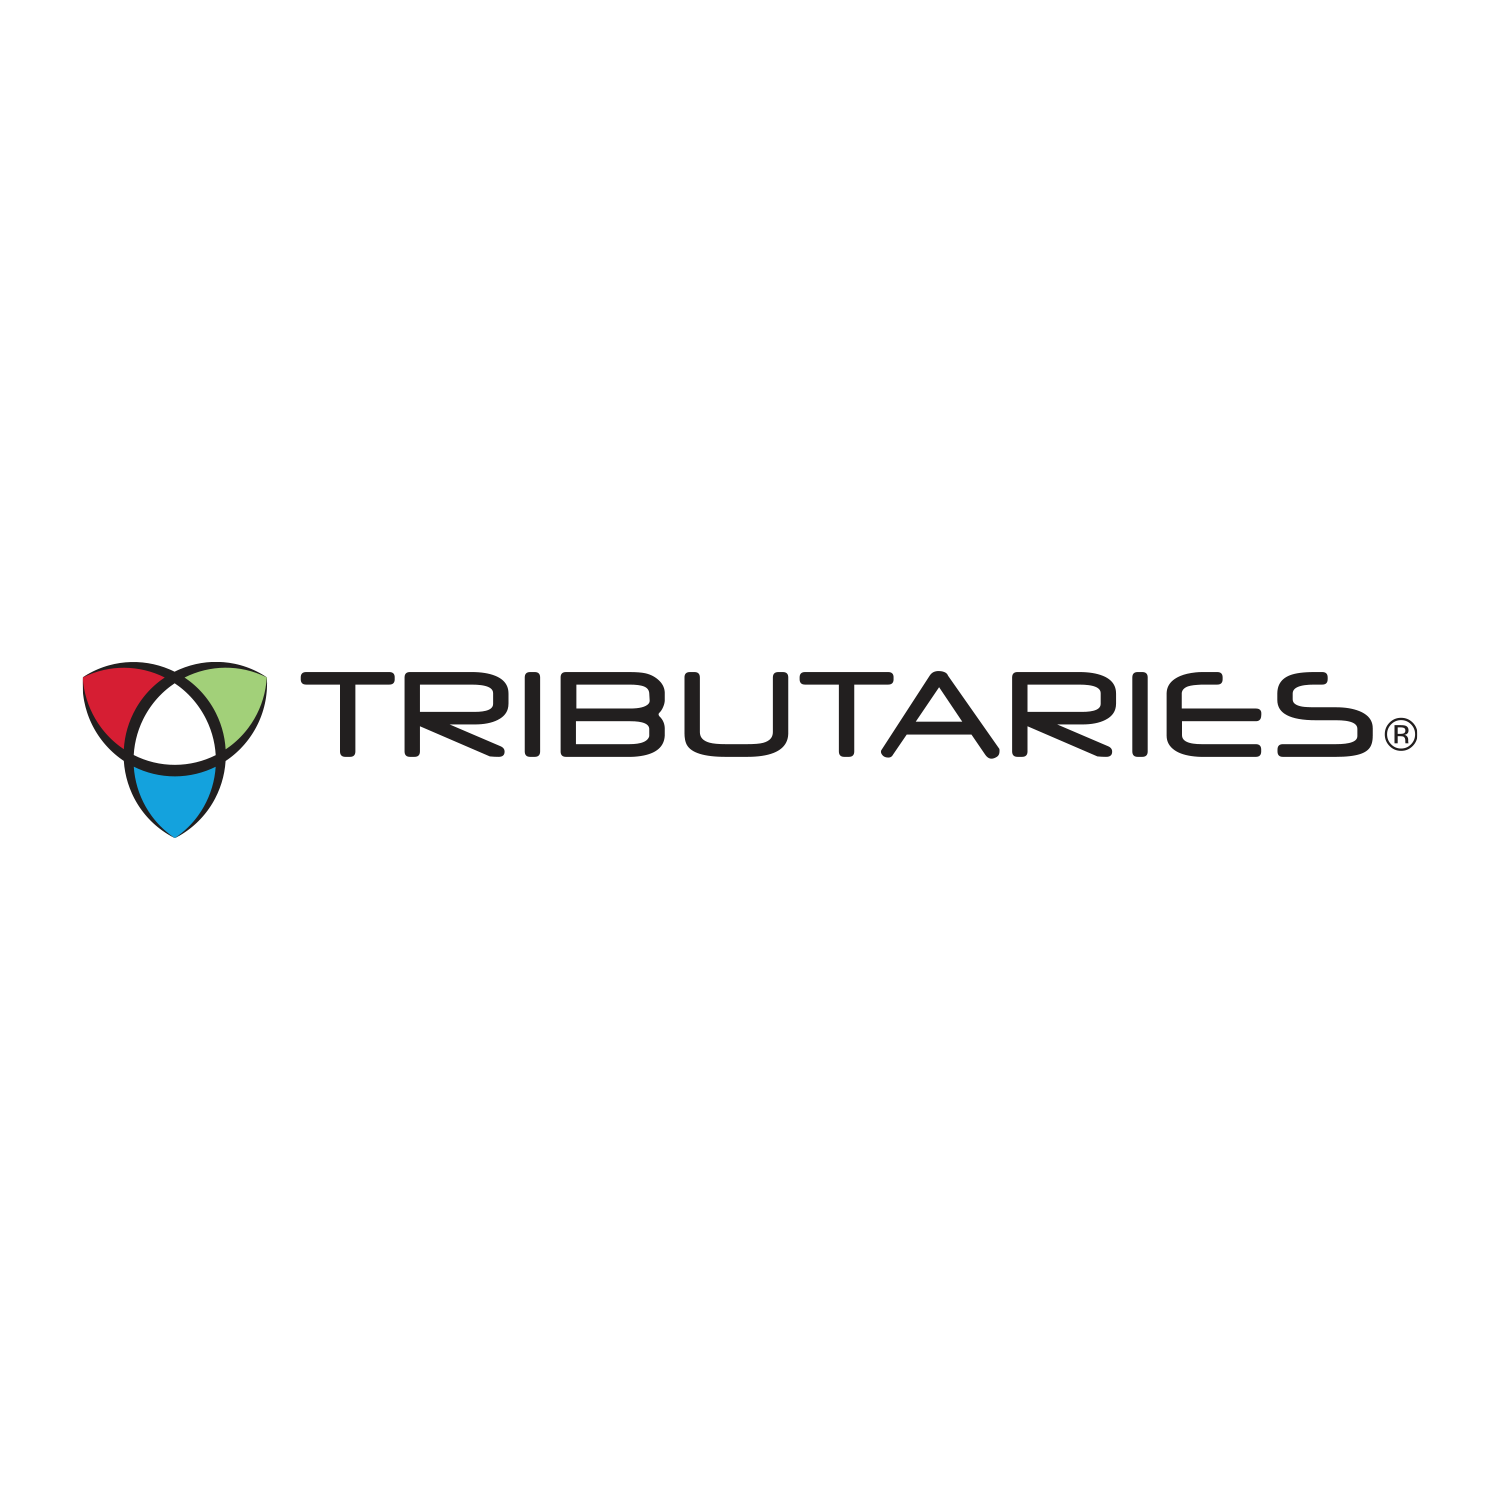 Logo Tributaries